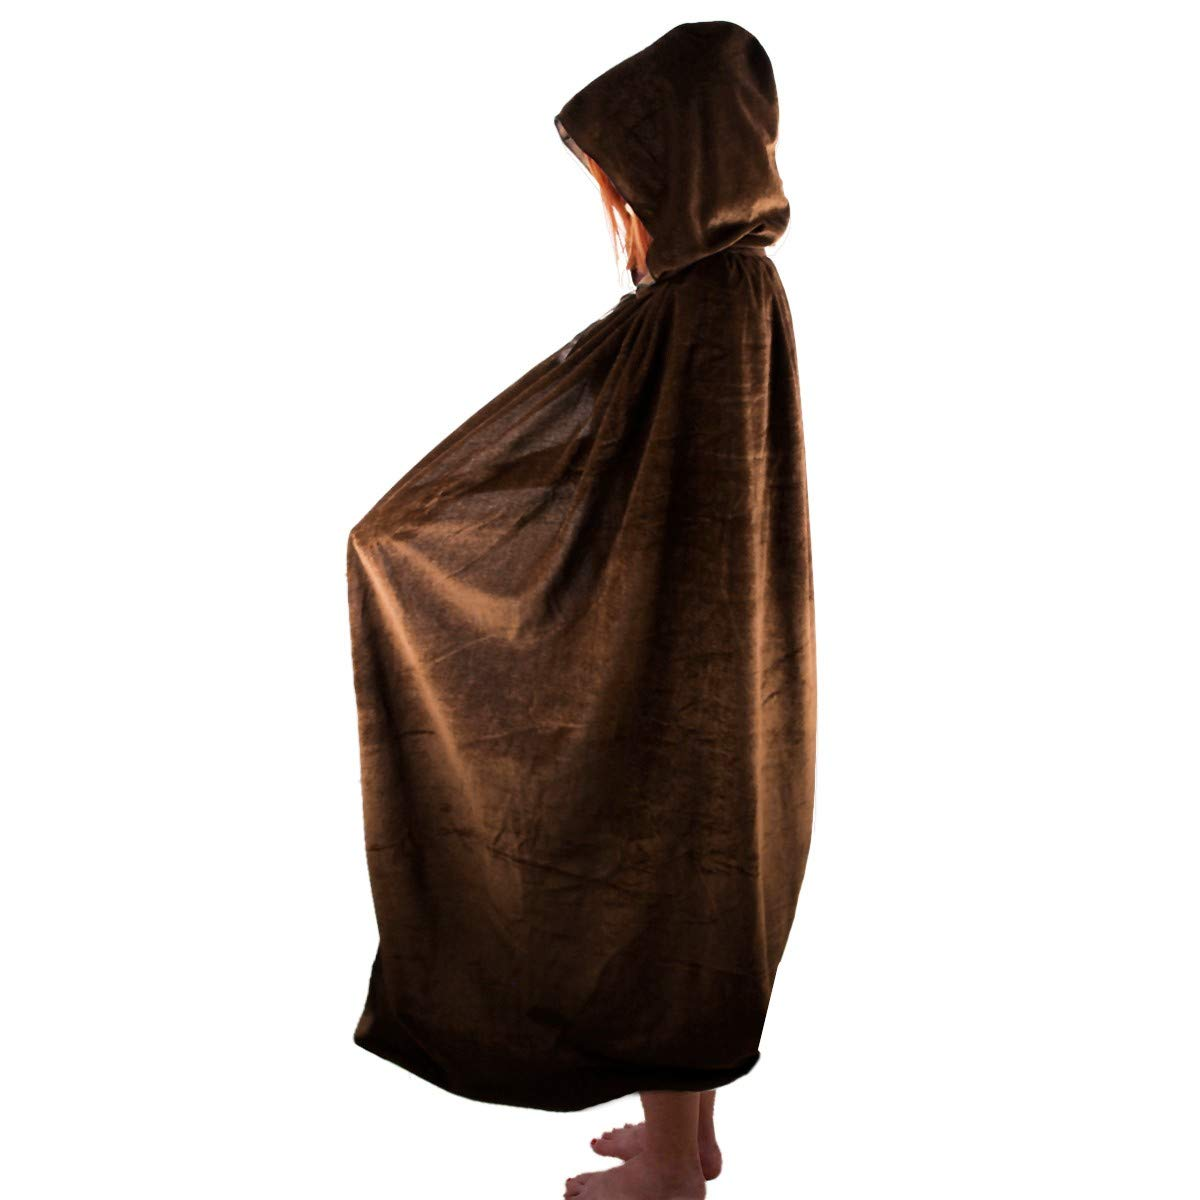 SUNYIK Unisex Kids Long Hooded Cloak Cape for Halloween Party Role Cosplay Costumes